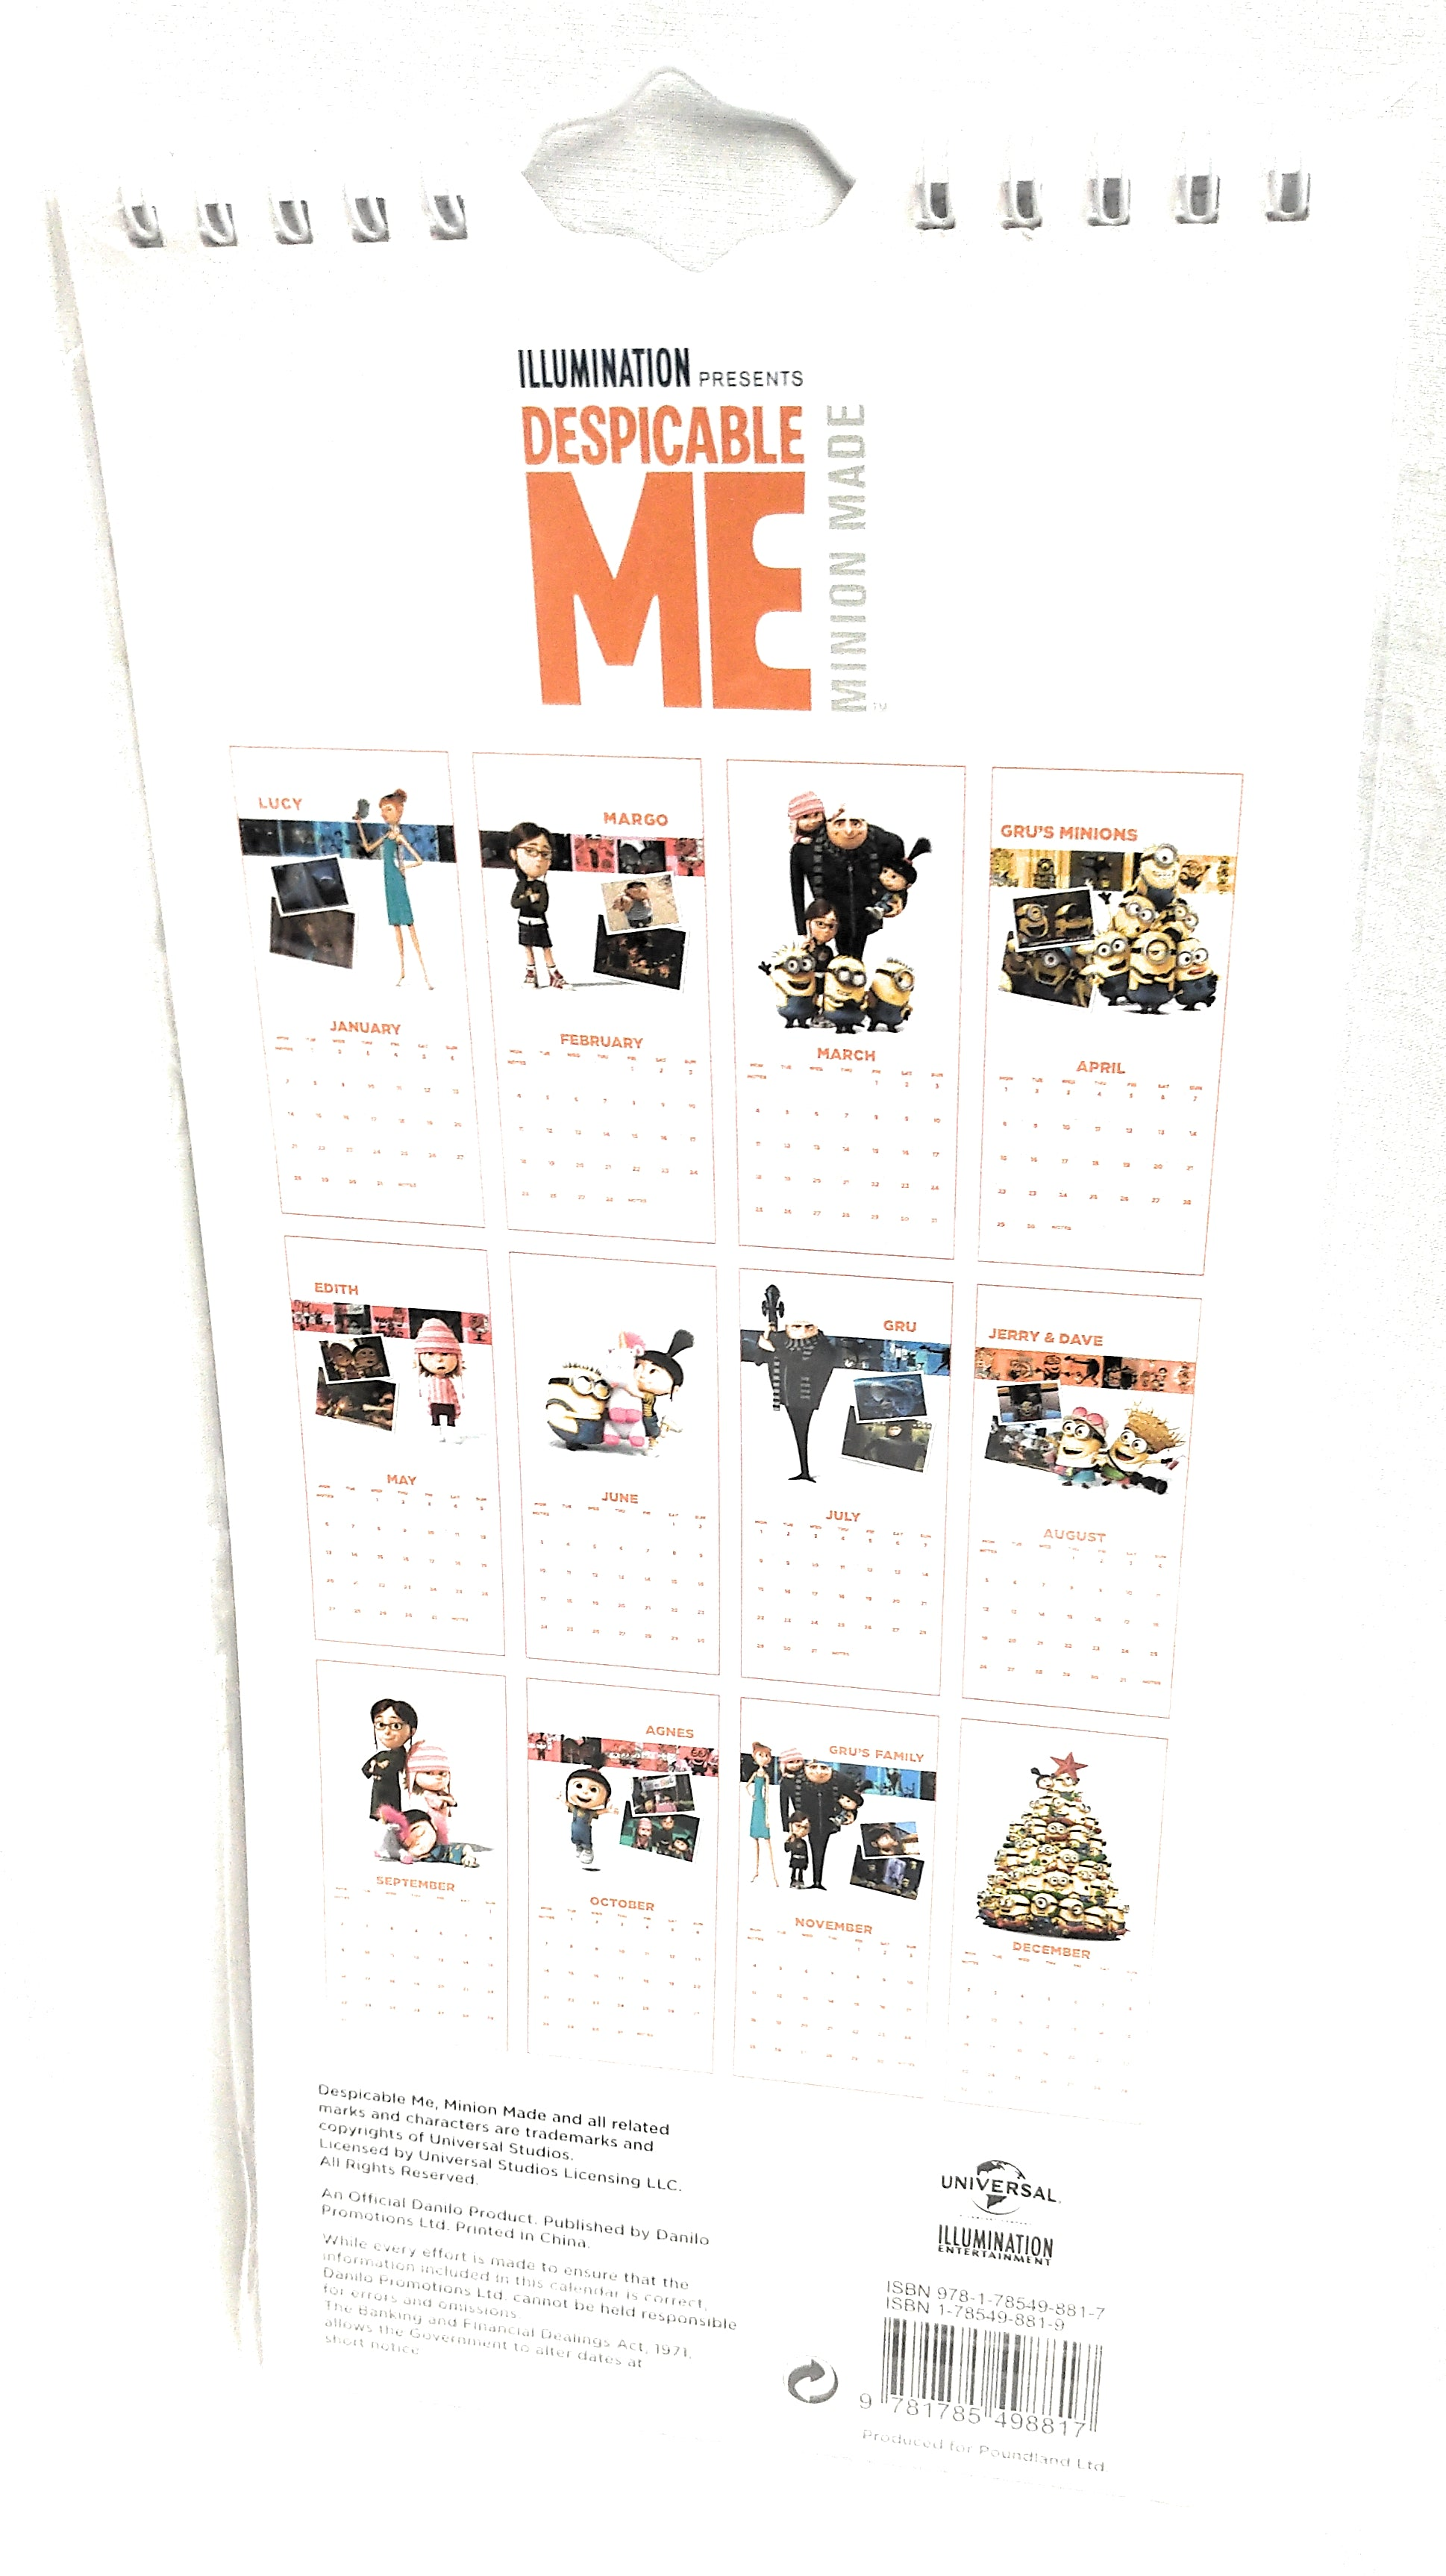 Despicable Me 2019 Calendar - Month To View (New)